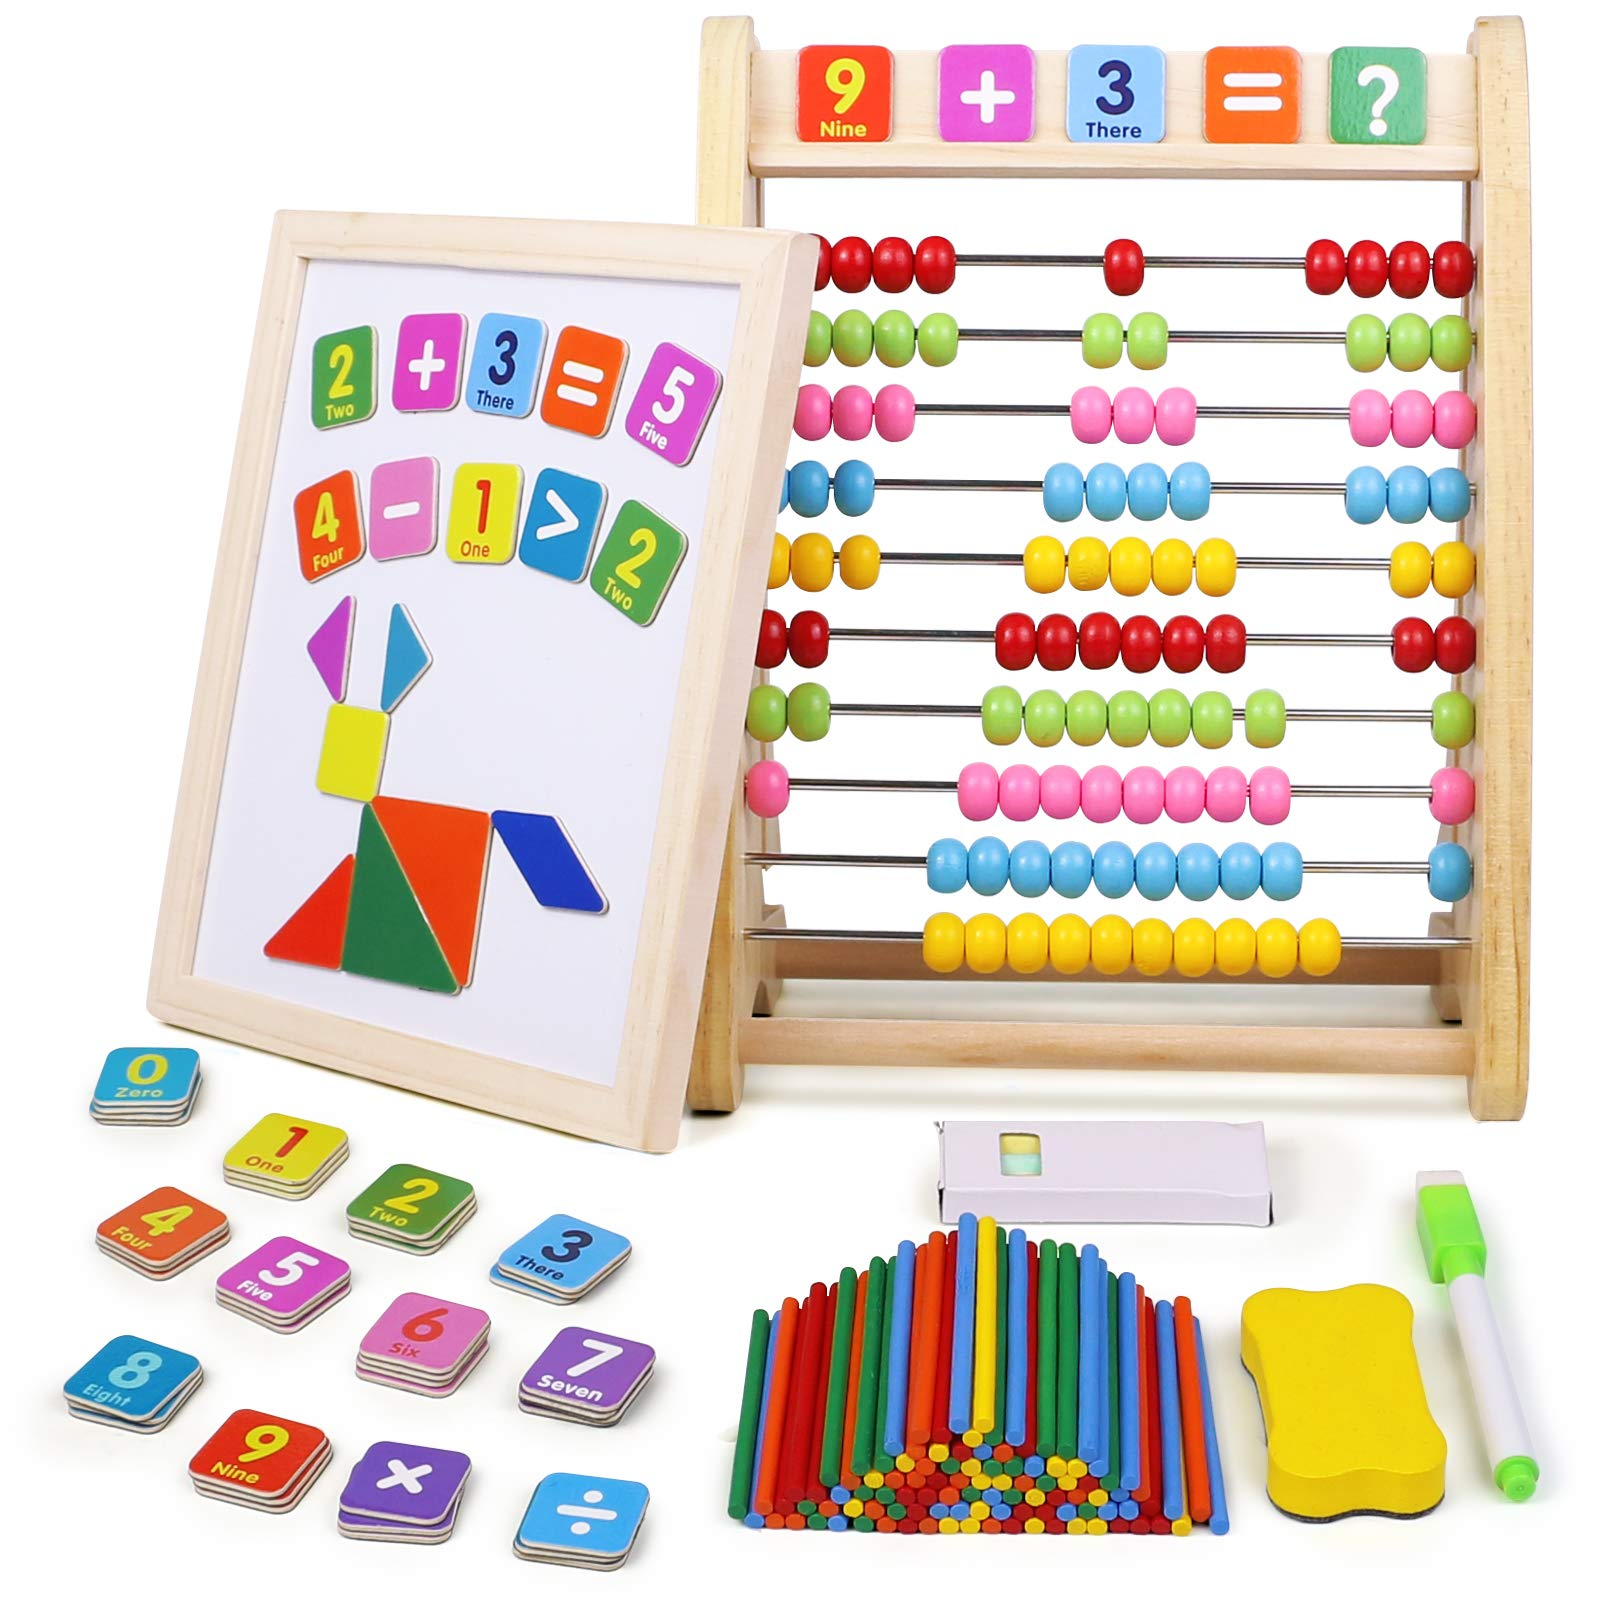 Jerryvon Abacus Magnetic Drawing Board Wooden Montessori Kids Toys Easel Kids for Painting with Whiteboard Blackboard Puzzles Maths Games Childrens Learning Educational Toys for 3 4 5 Year Olds